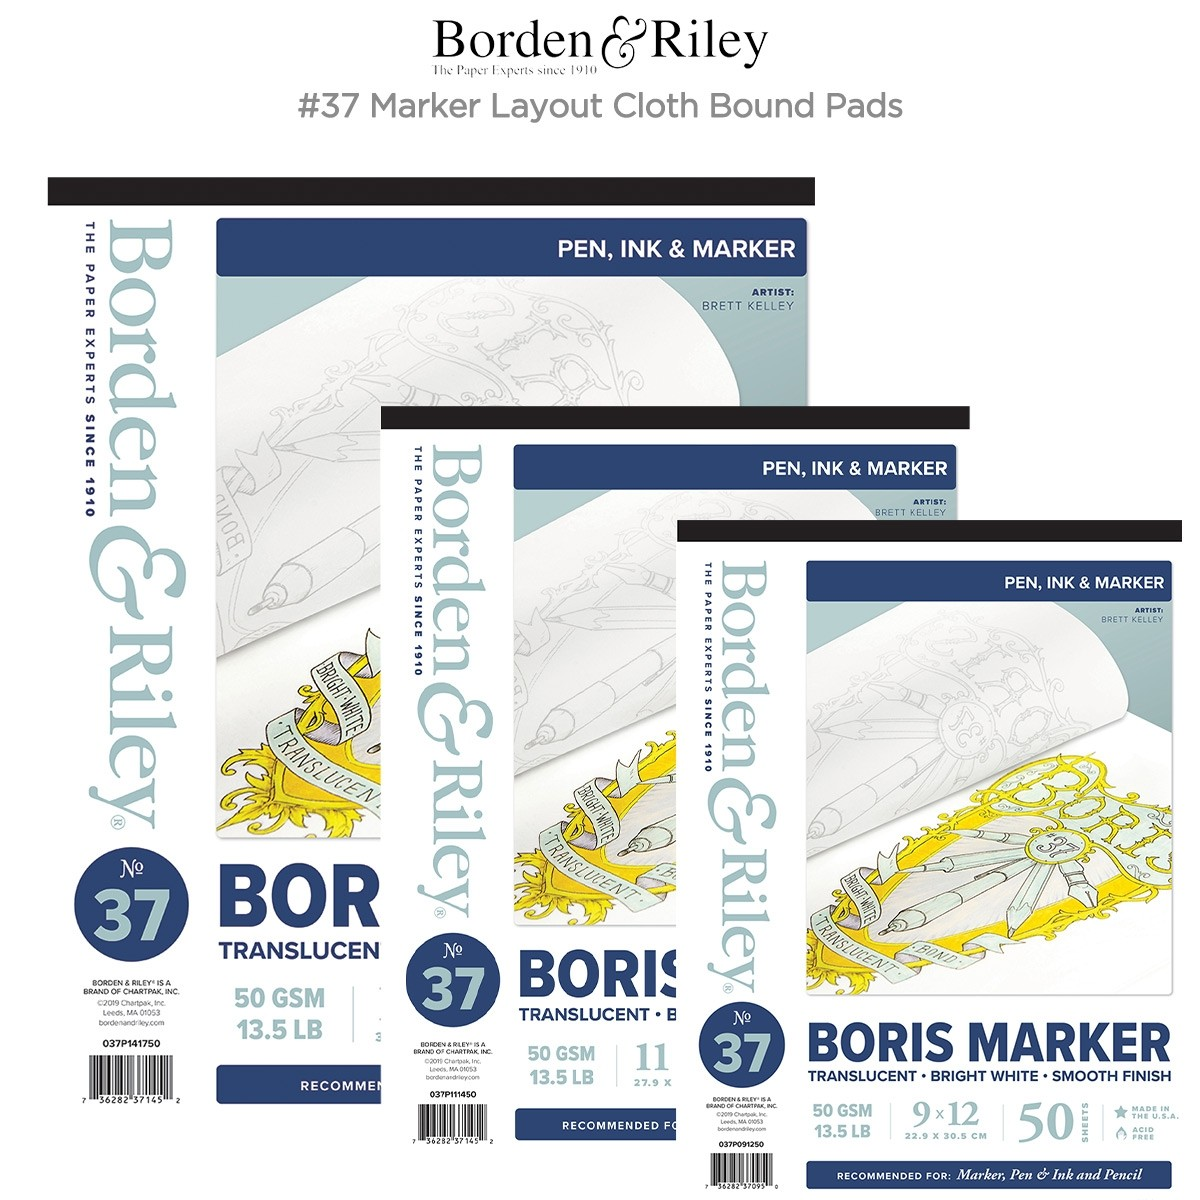 Borden & Riley #37 Marker Layout Cloth Bound Pads